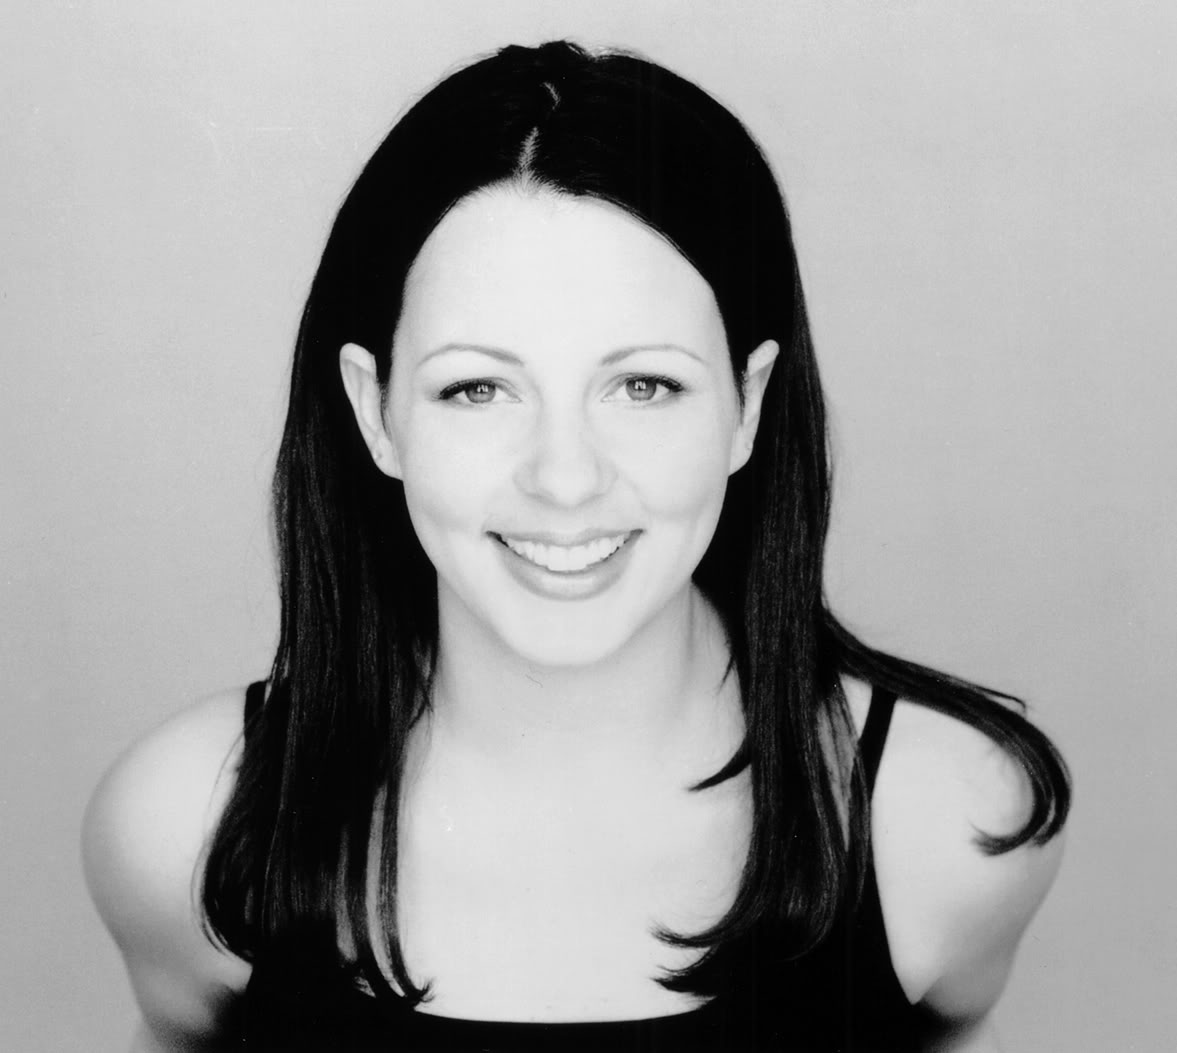 Sara Evans in a black tank top and long hair. She is smiling in the picture.